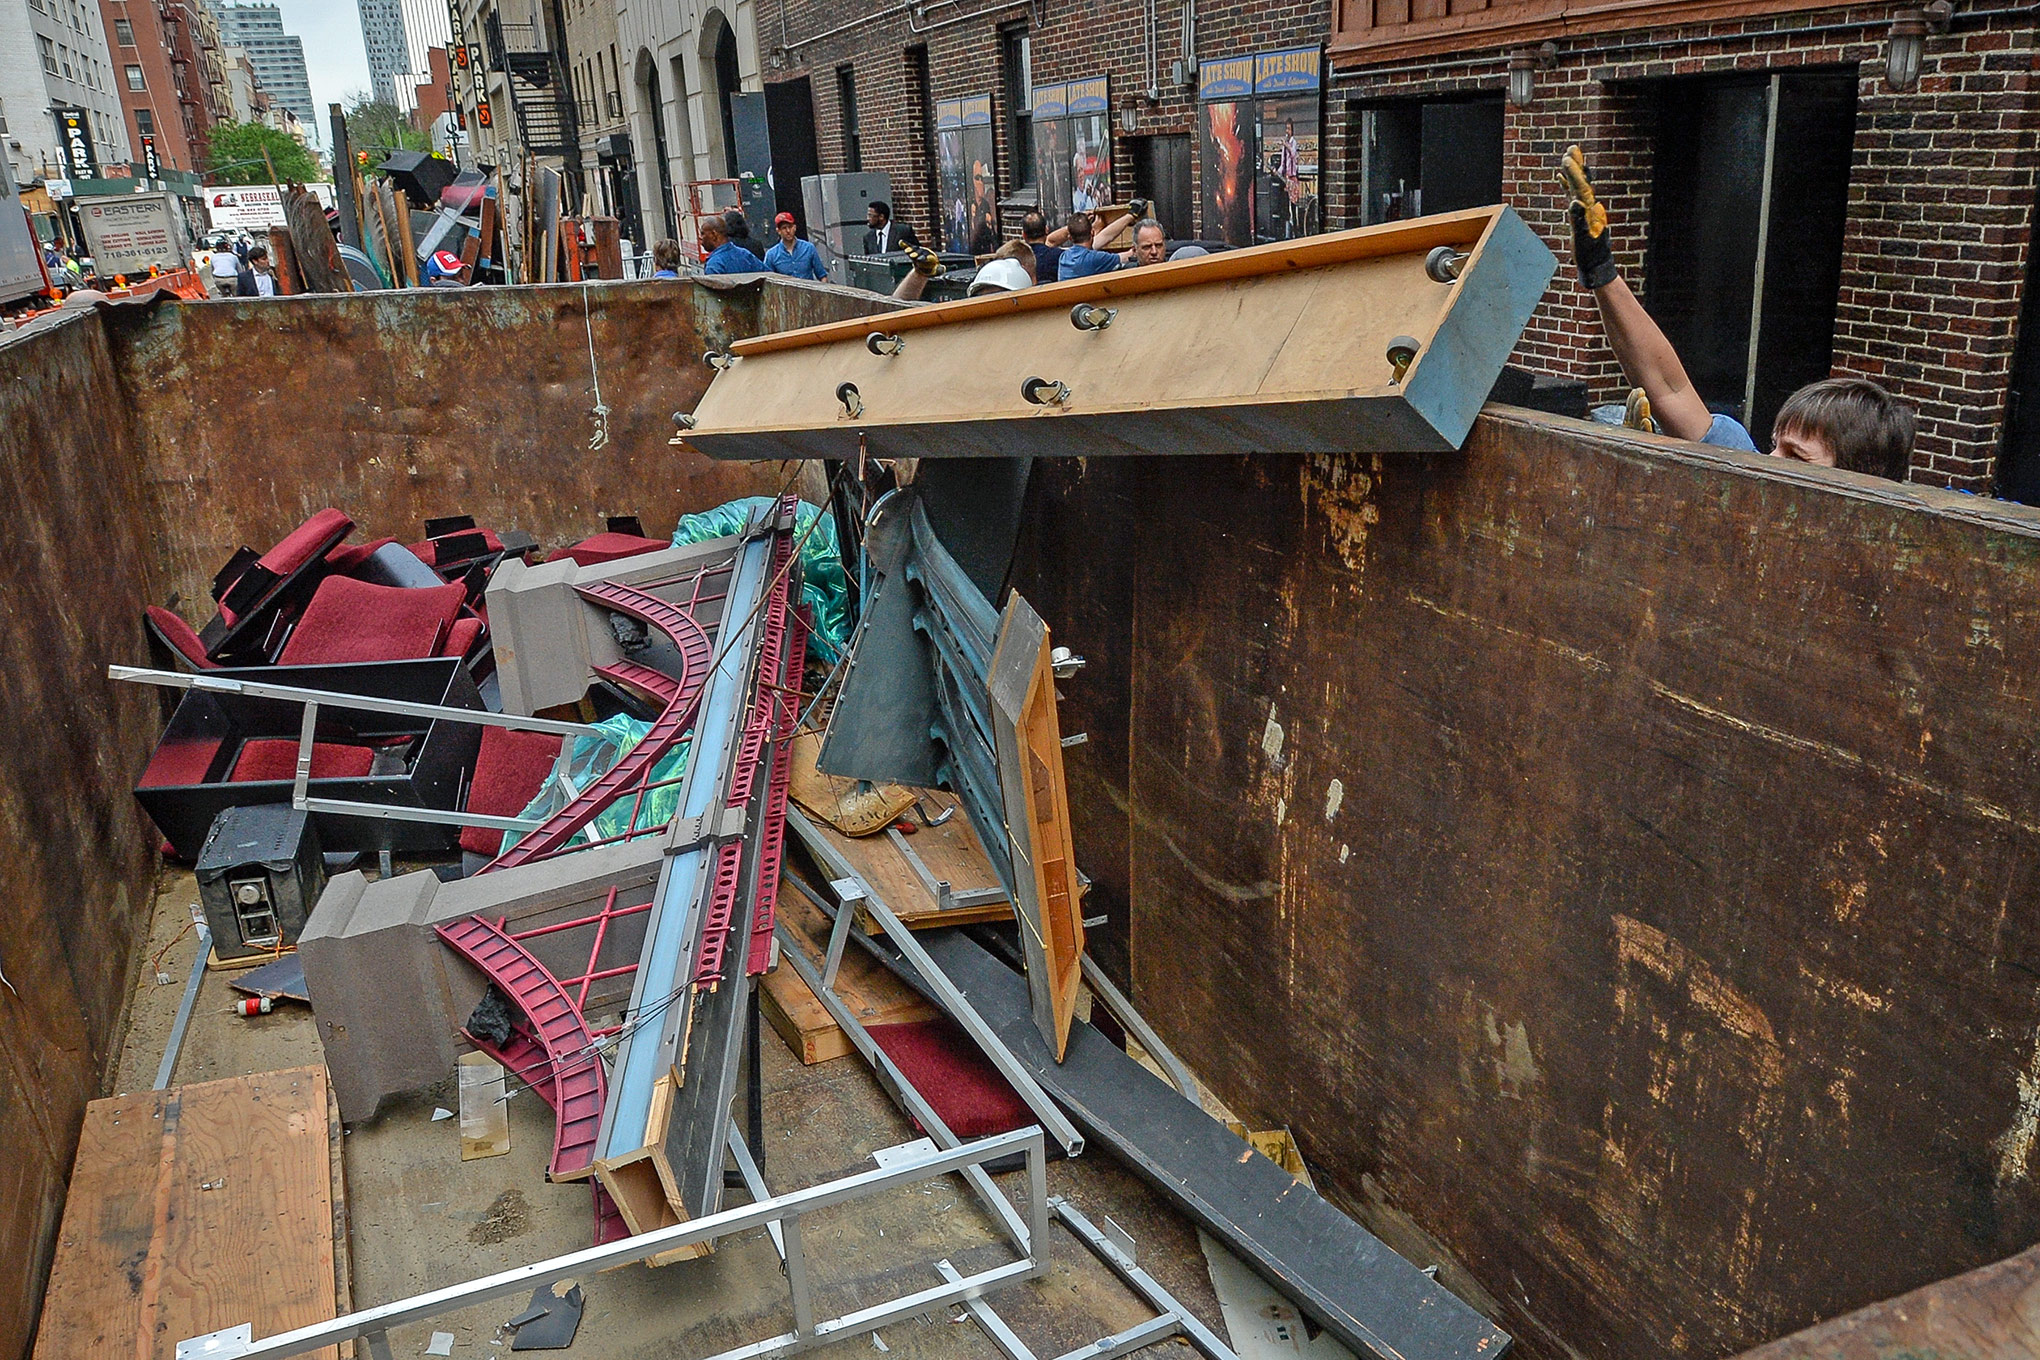 What's more criminal? Throwing out David Letterman's Late Show set, or dumpster-diving for it?